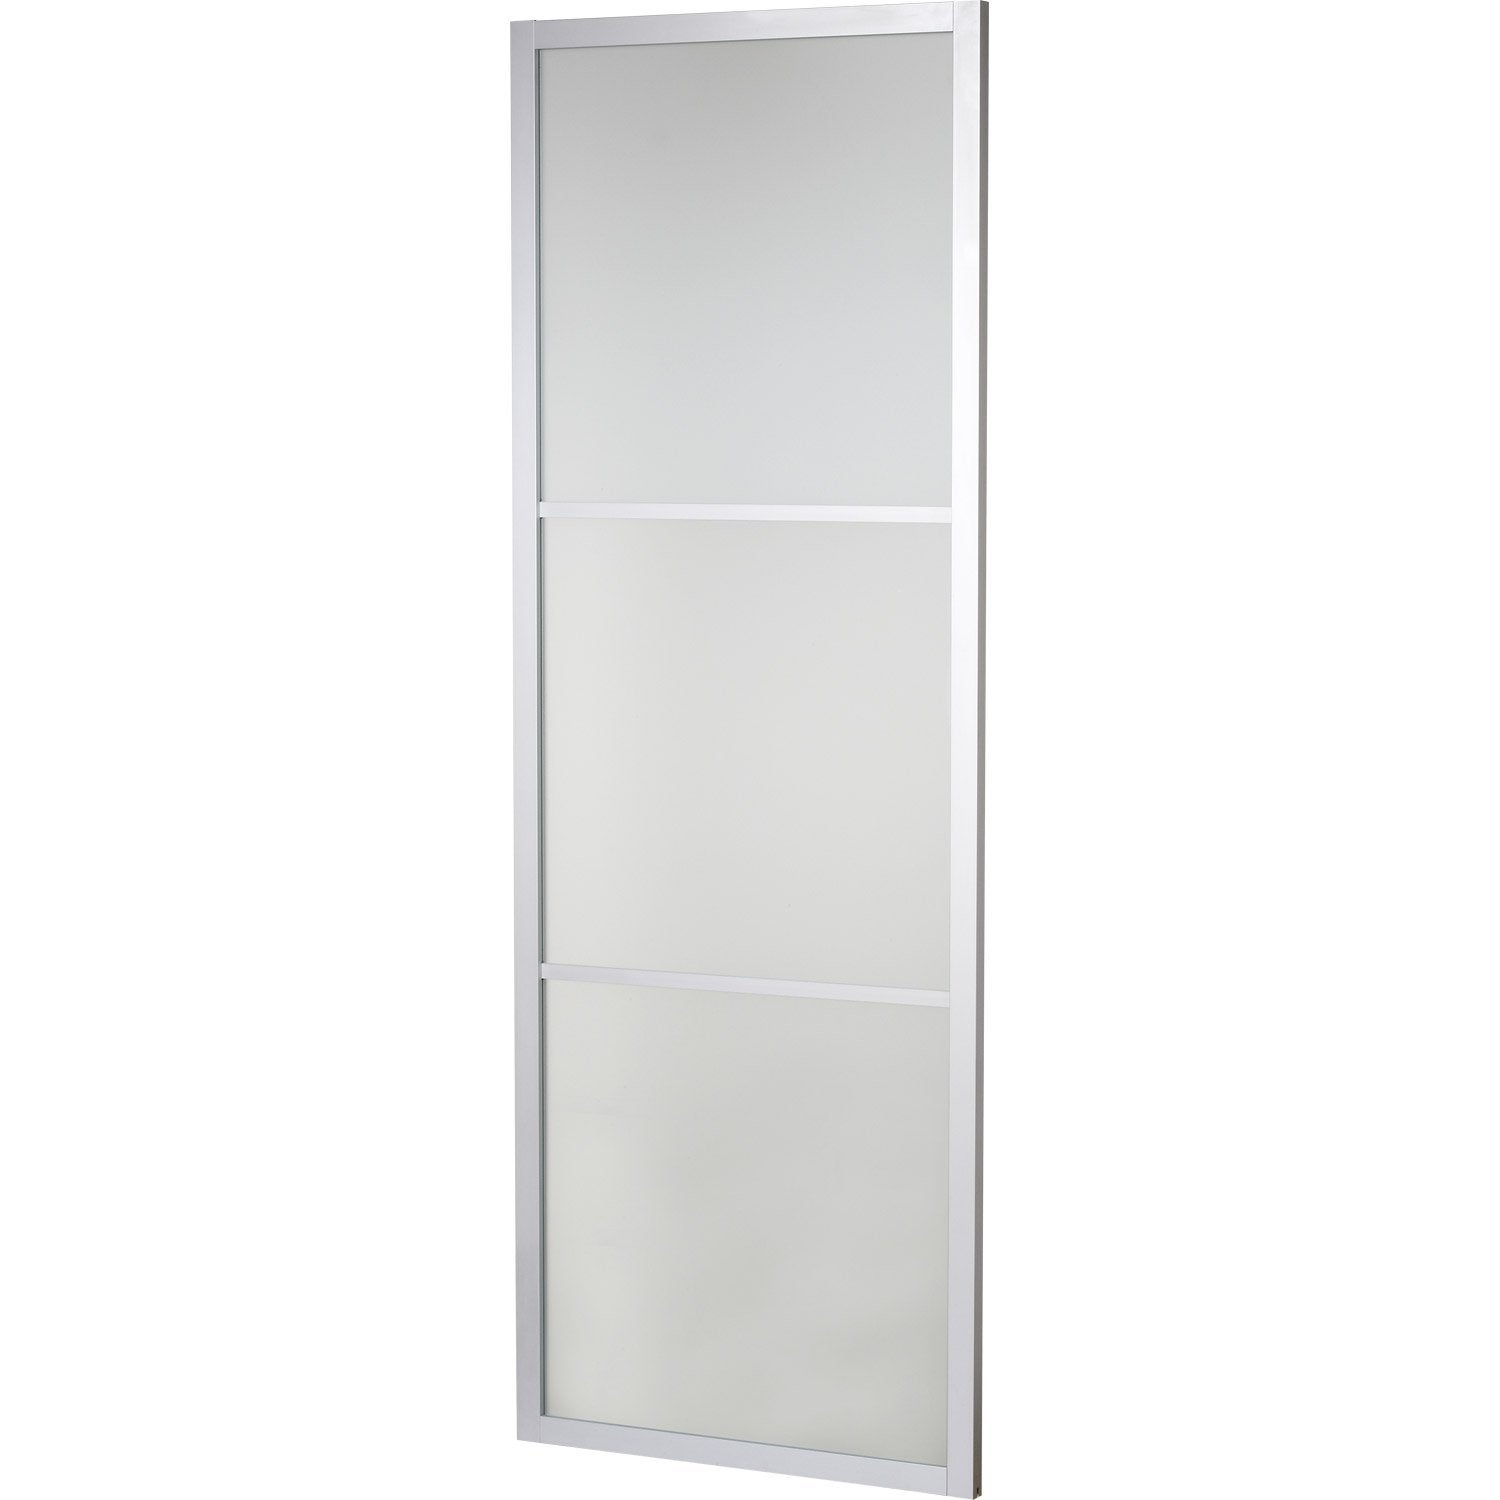 Porte coulissante verre tremp aspen artens 204 x 73 cm for Porte coulissante 63